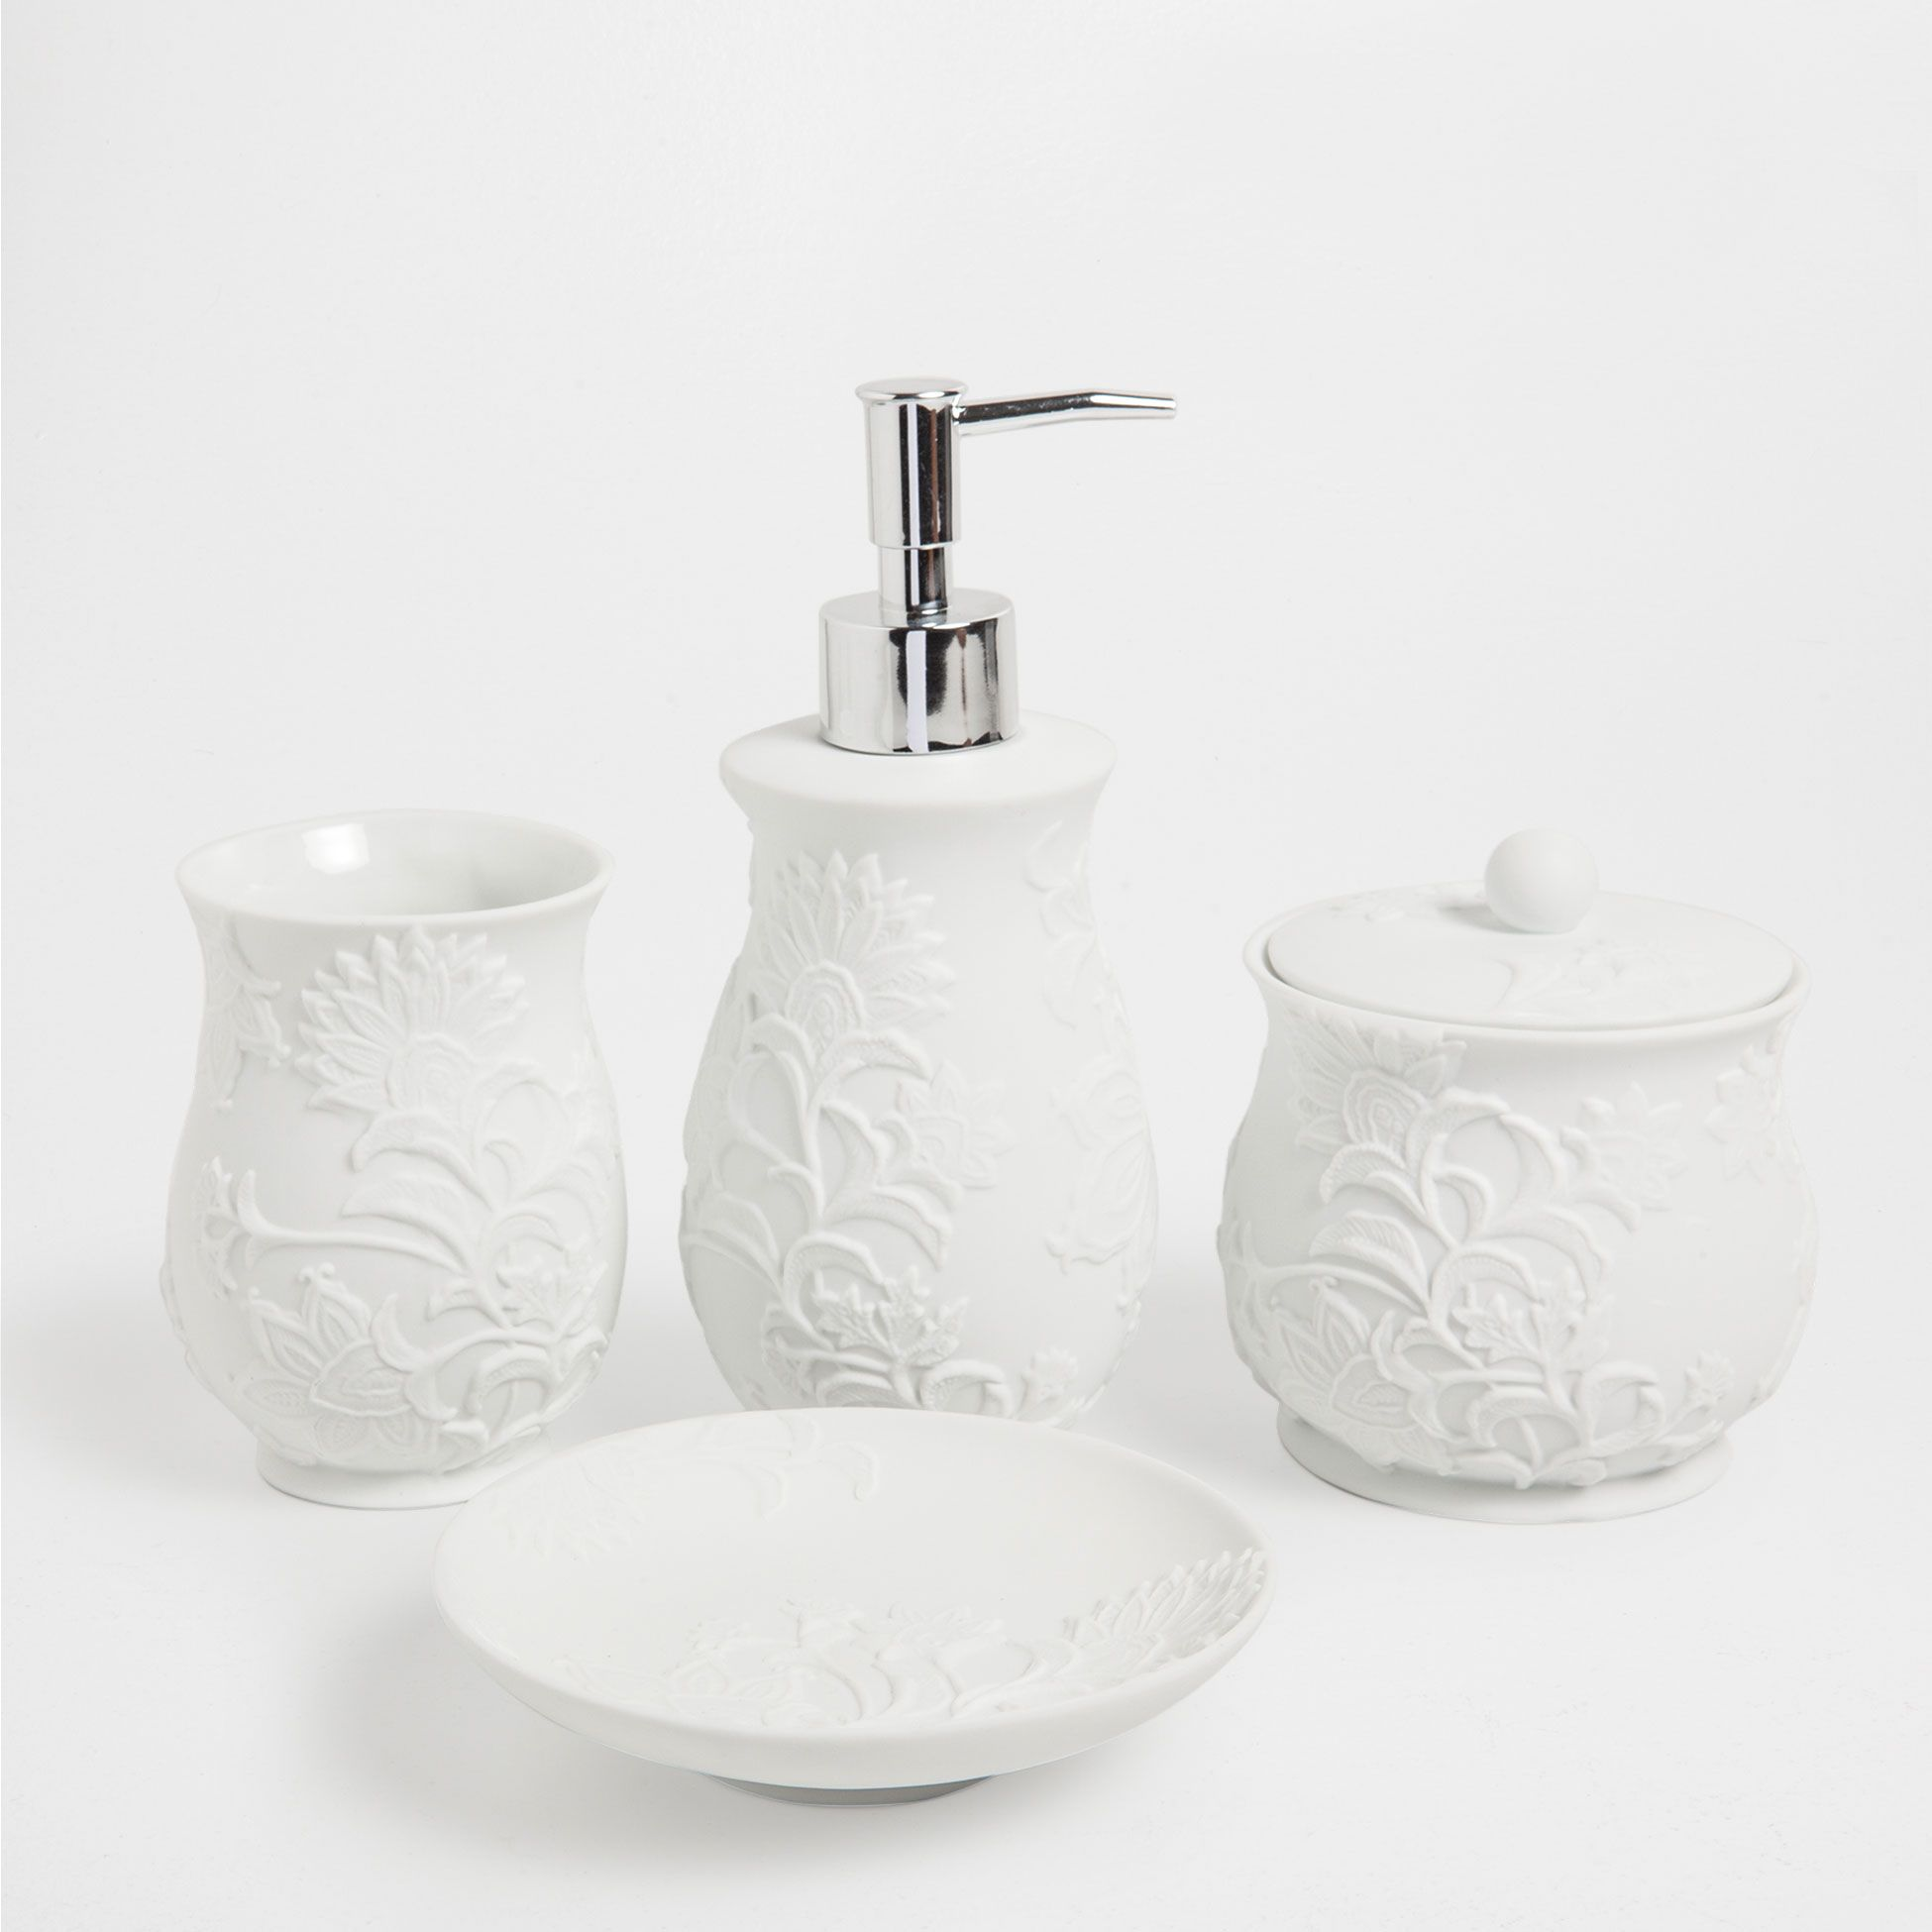 Escobilleros De Baño White Ceramic Bathroom Set Accessories Bathroom Zara